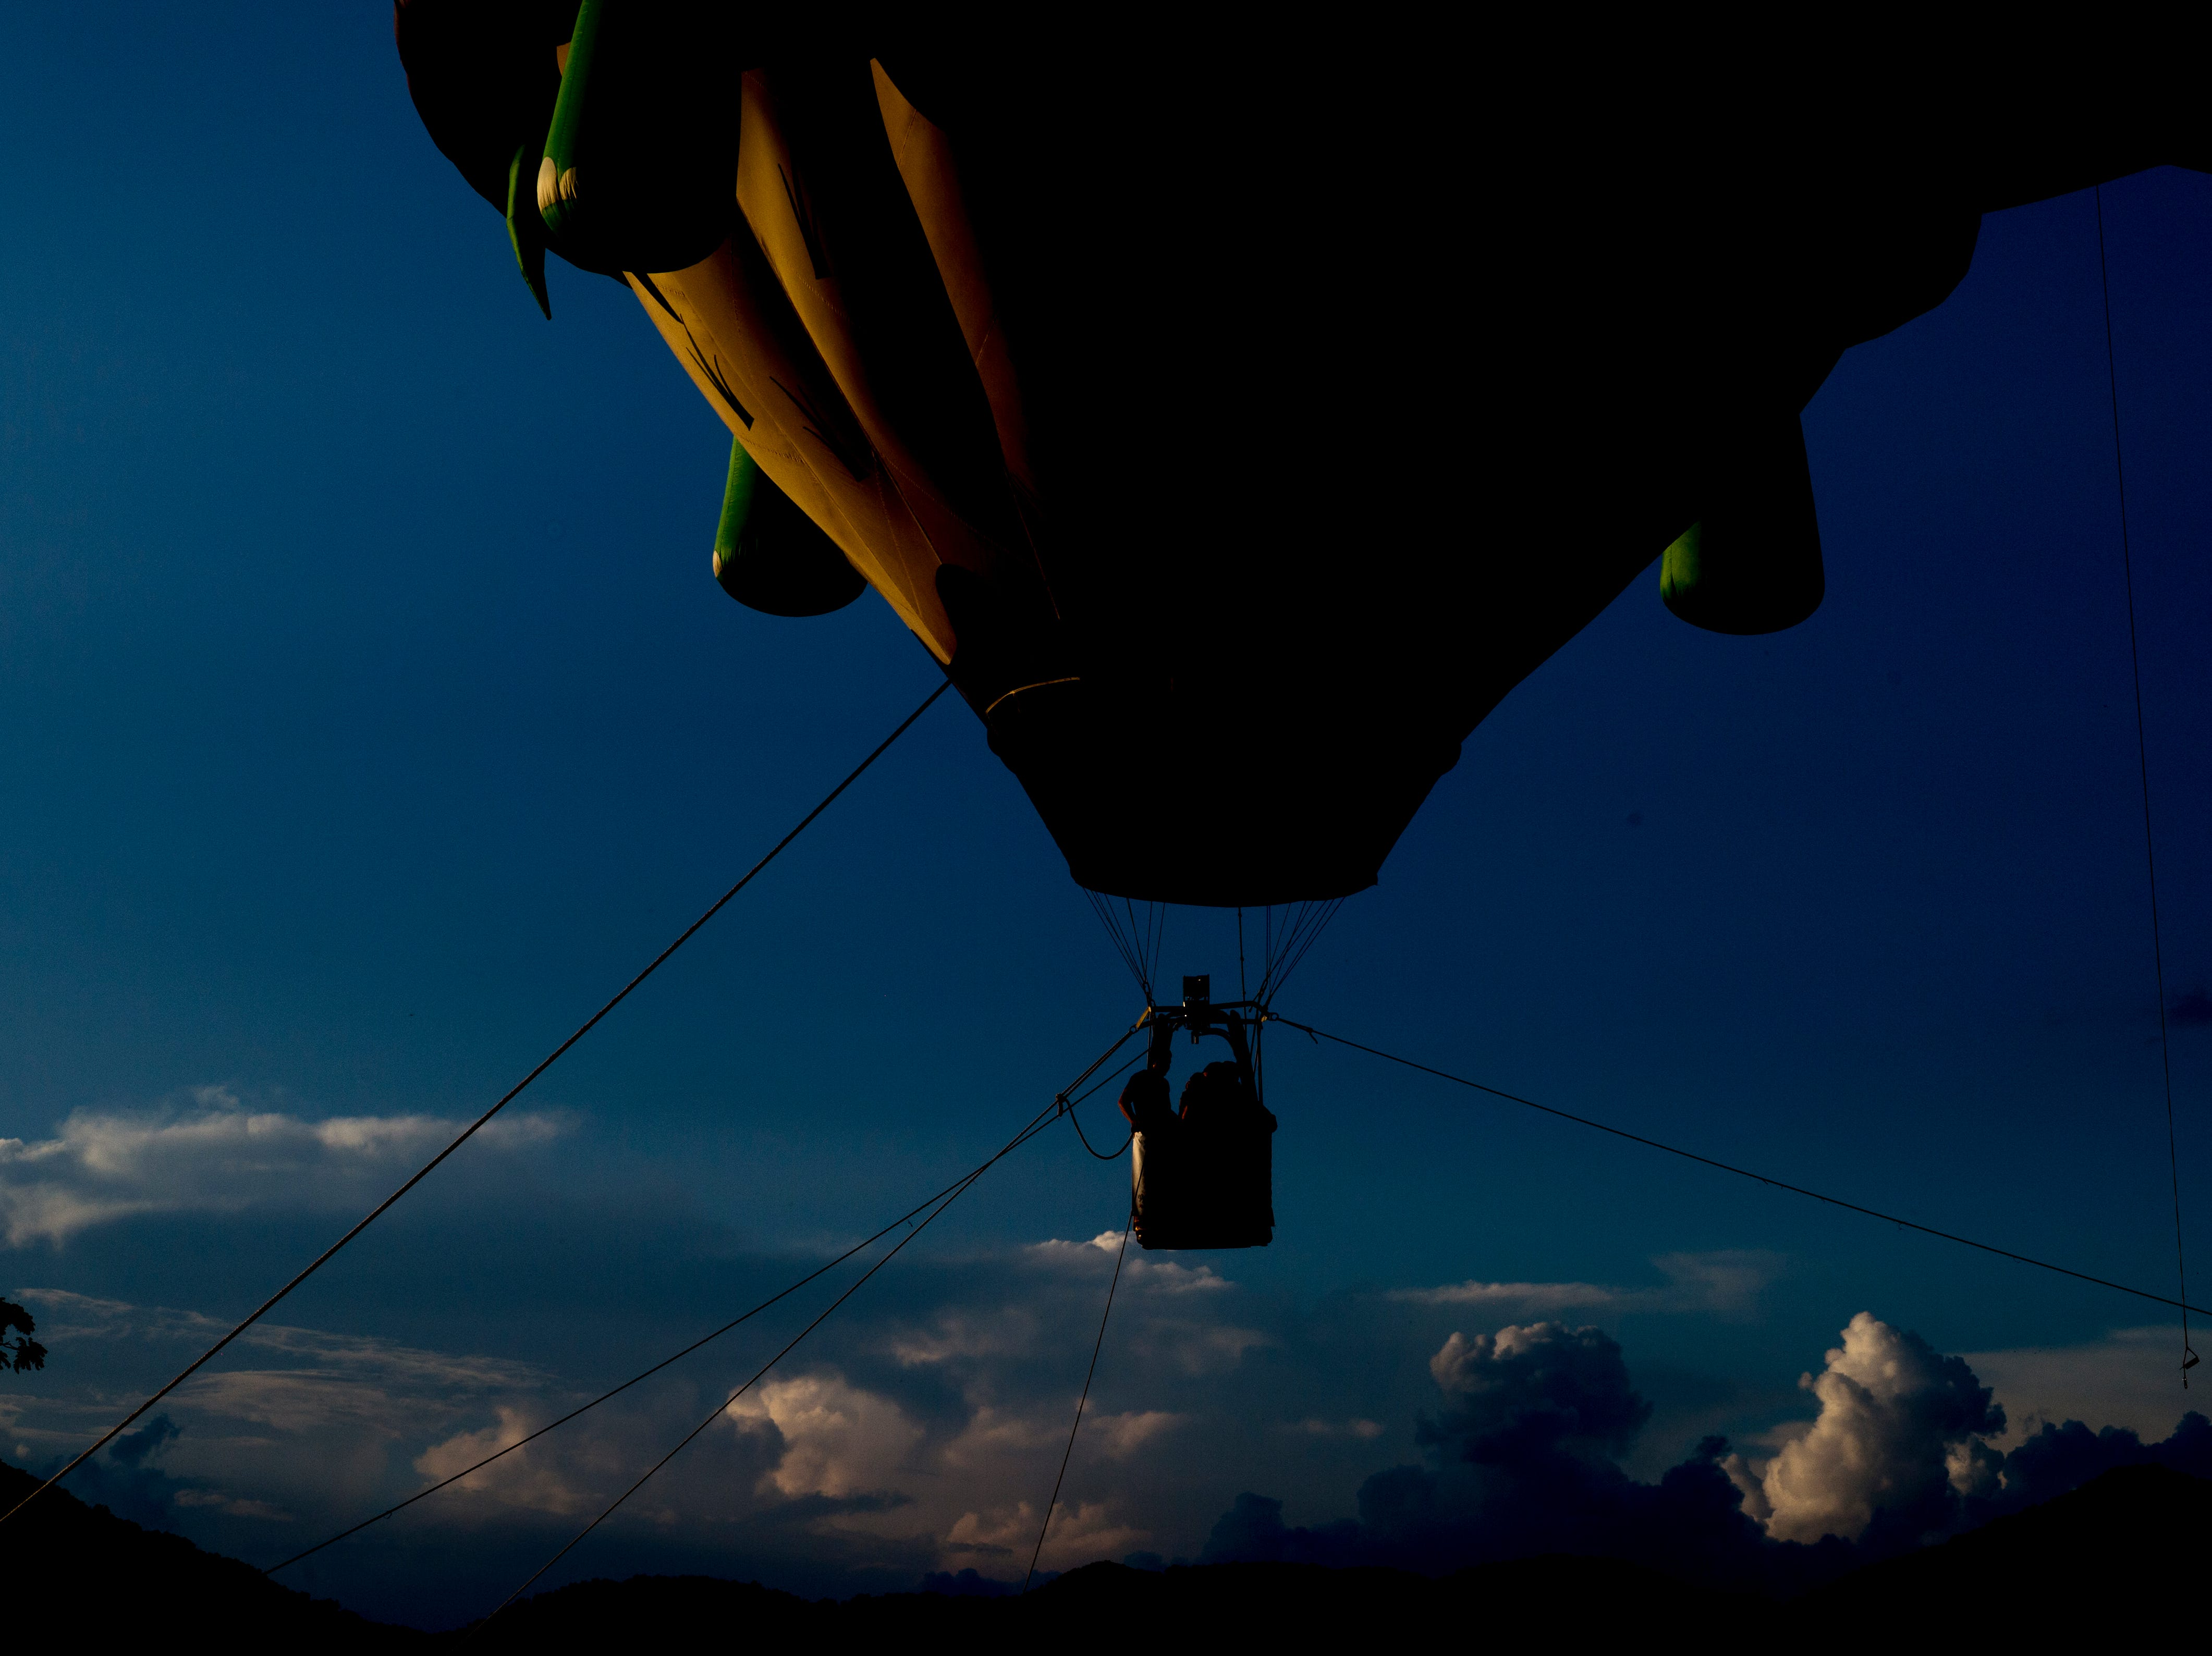 A hot air balloon rises into the sky at the second annual Smoky Mountain Balloon Festival in Townsend, Tennessee on Saturday, August 18, 2018. The festival featured several hot air balloons, food trucks, wine tasting and live entertainment.